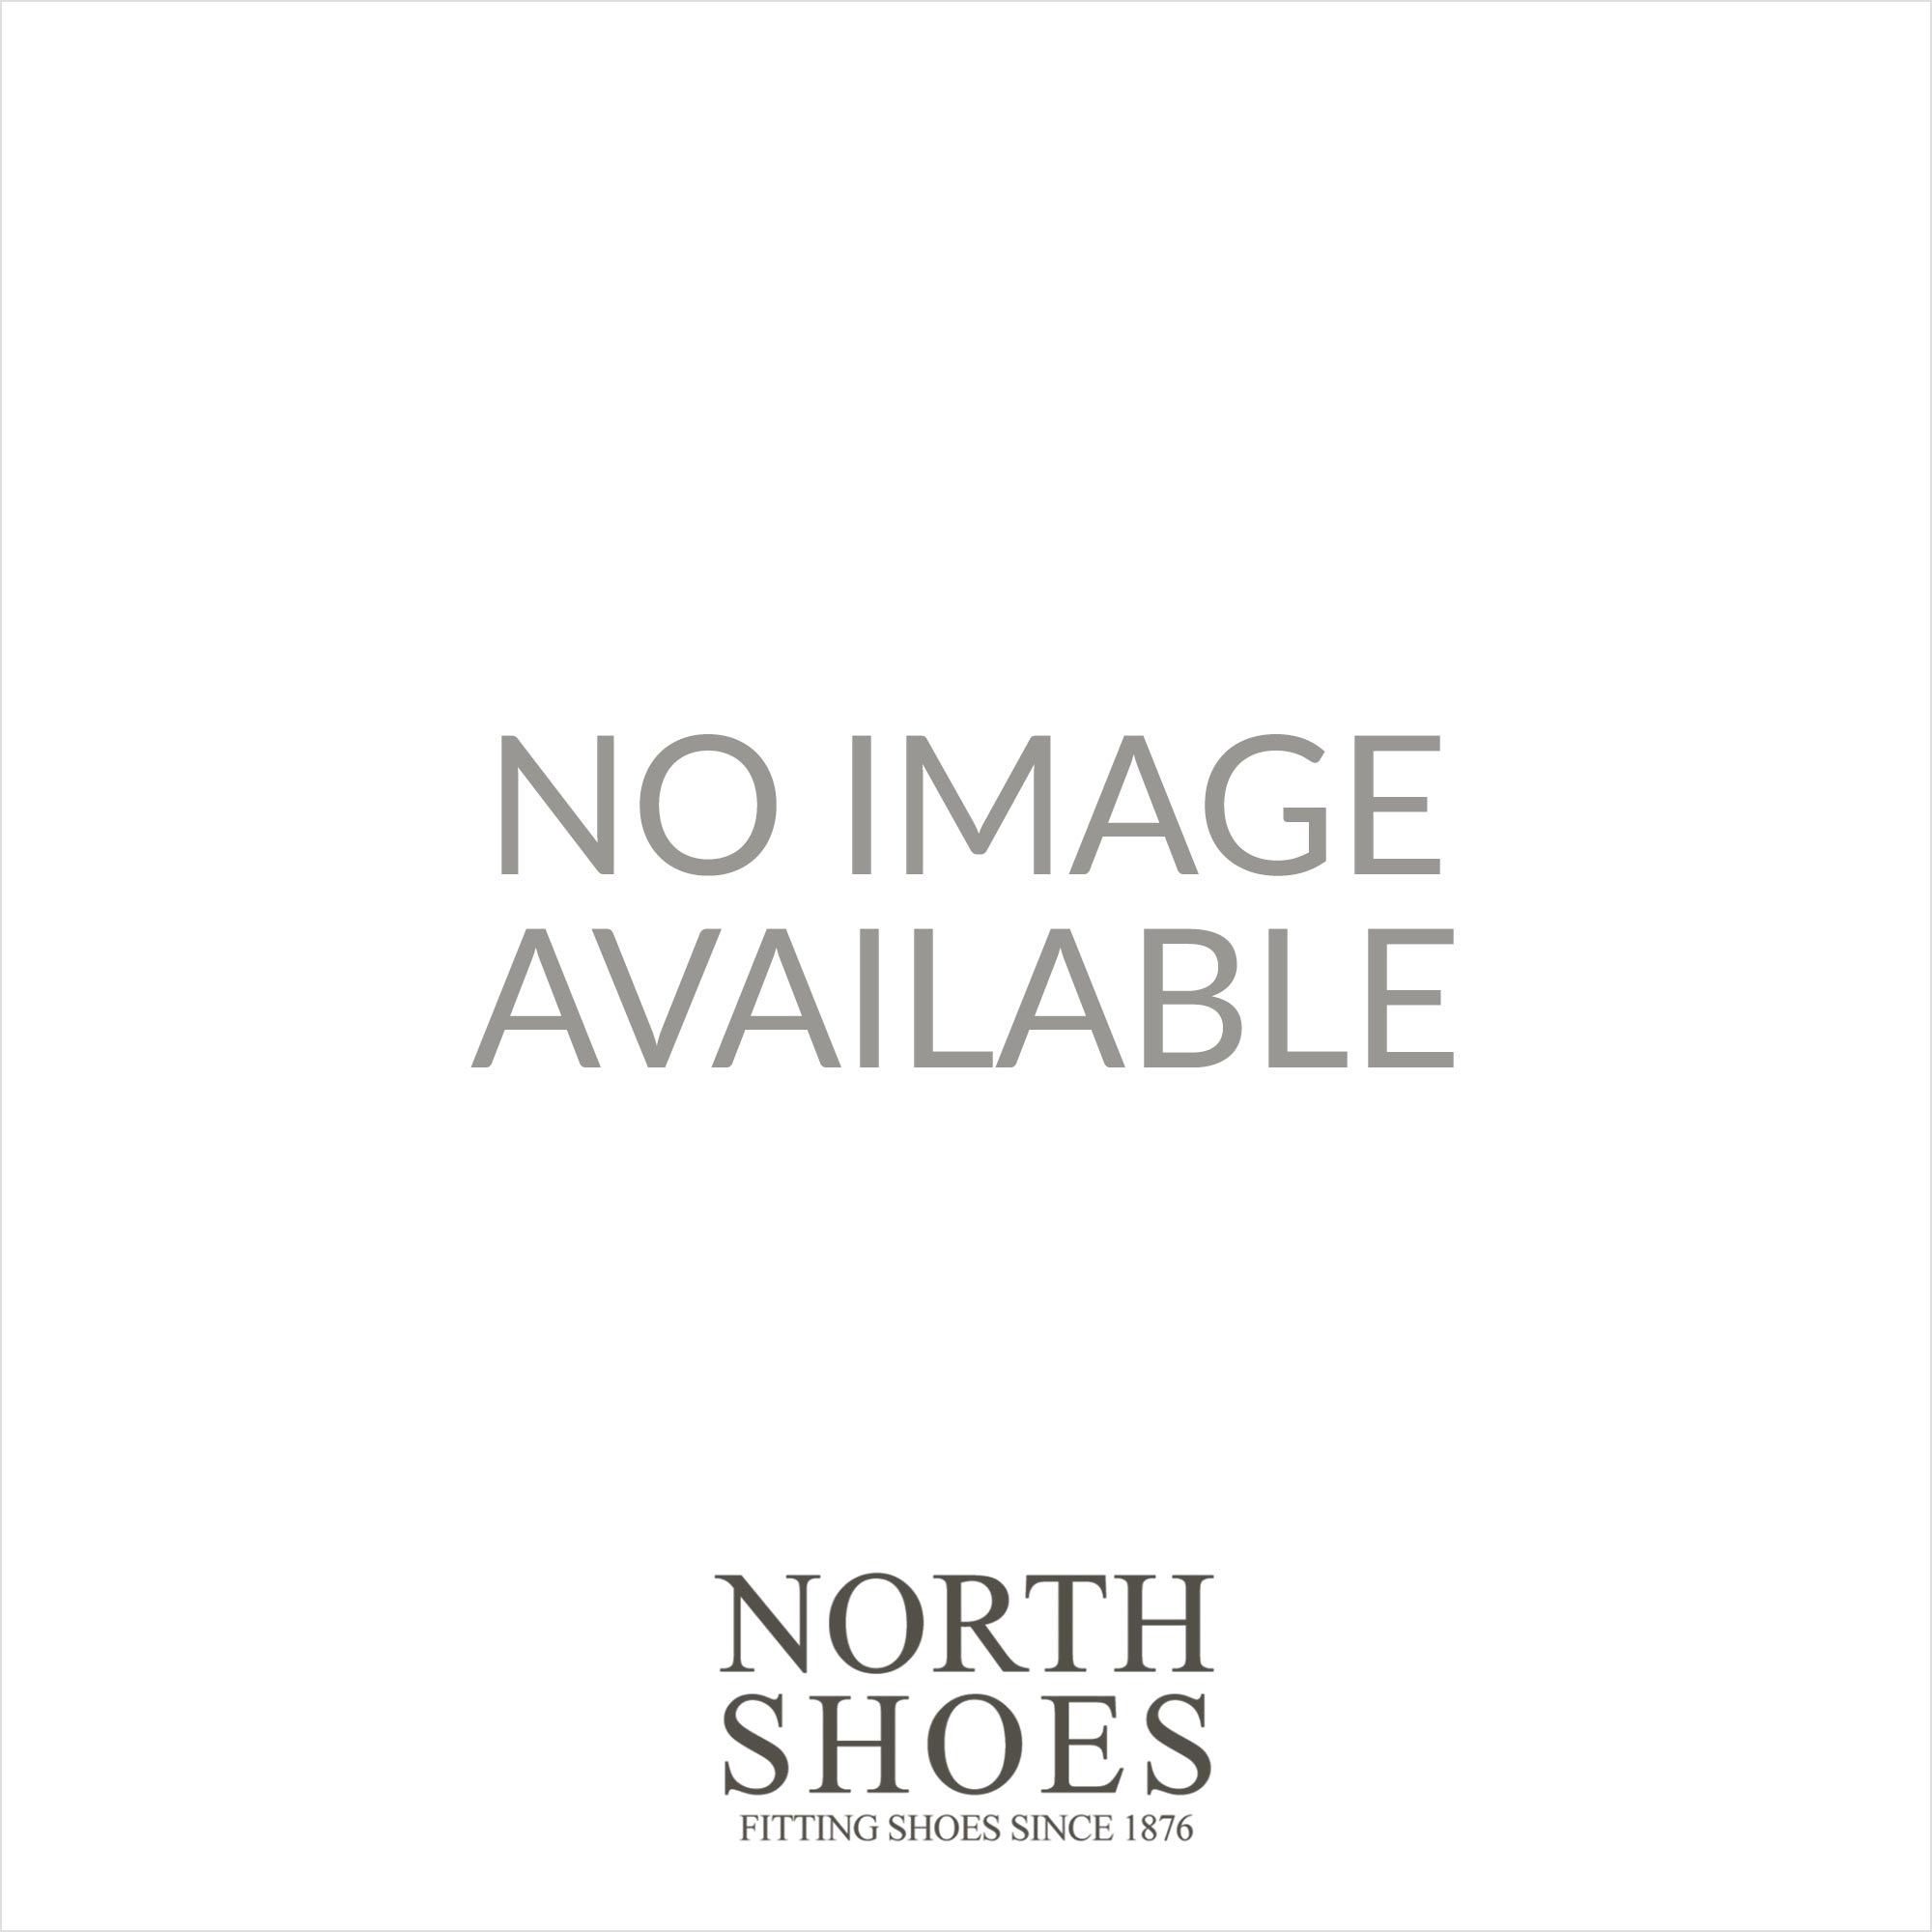 4a490494b Fitflop Skinny White Leather Womens Toe Post Sandal - Fitflop from ...